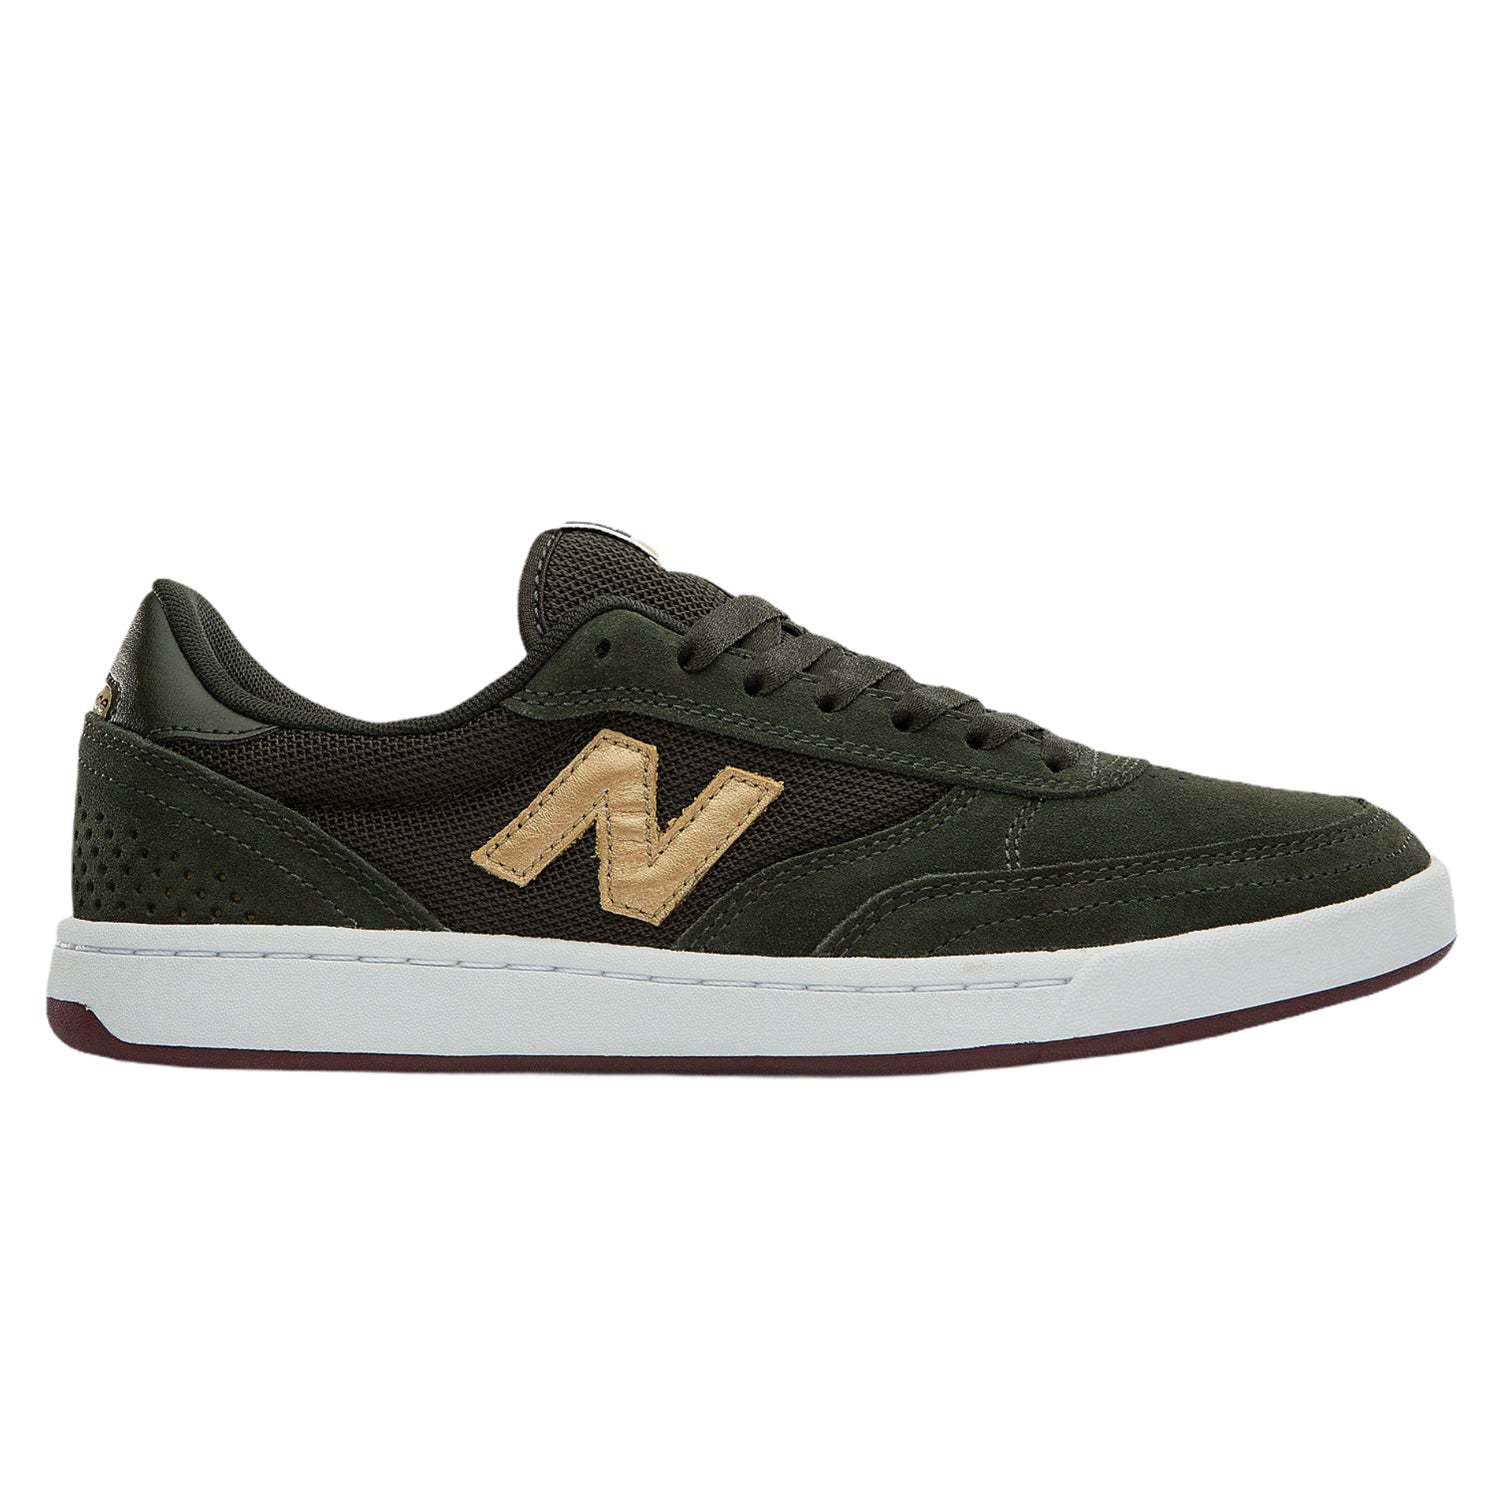 New Balance Numeric 440 NM440BLG Olive/Gold